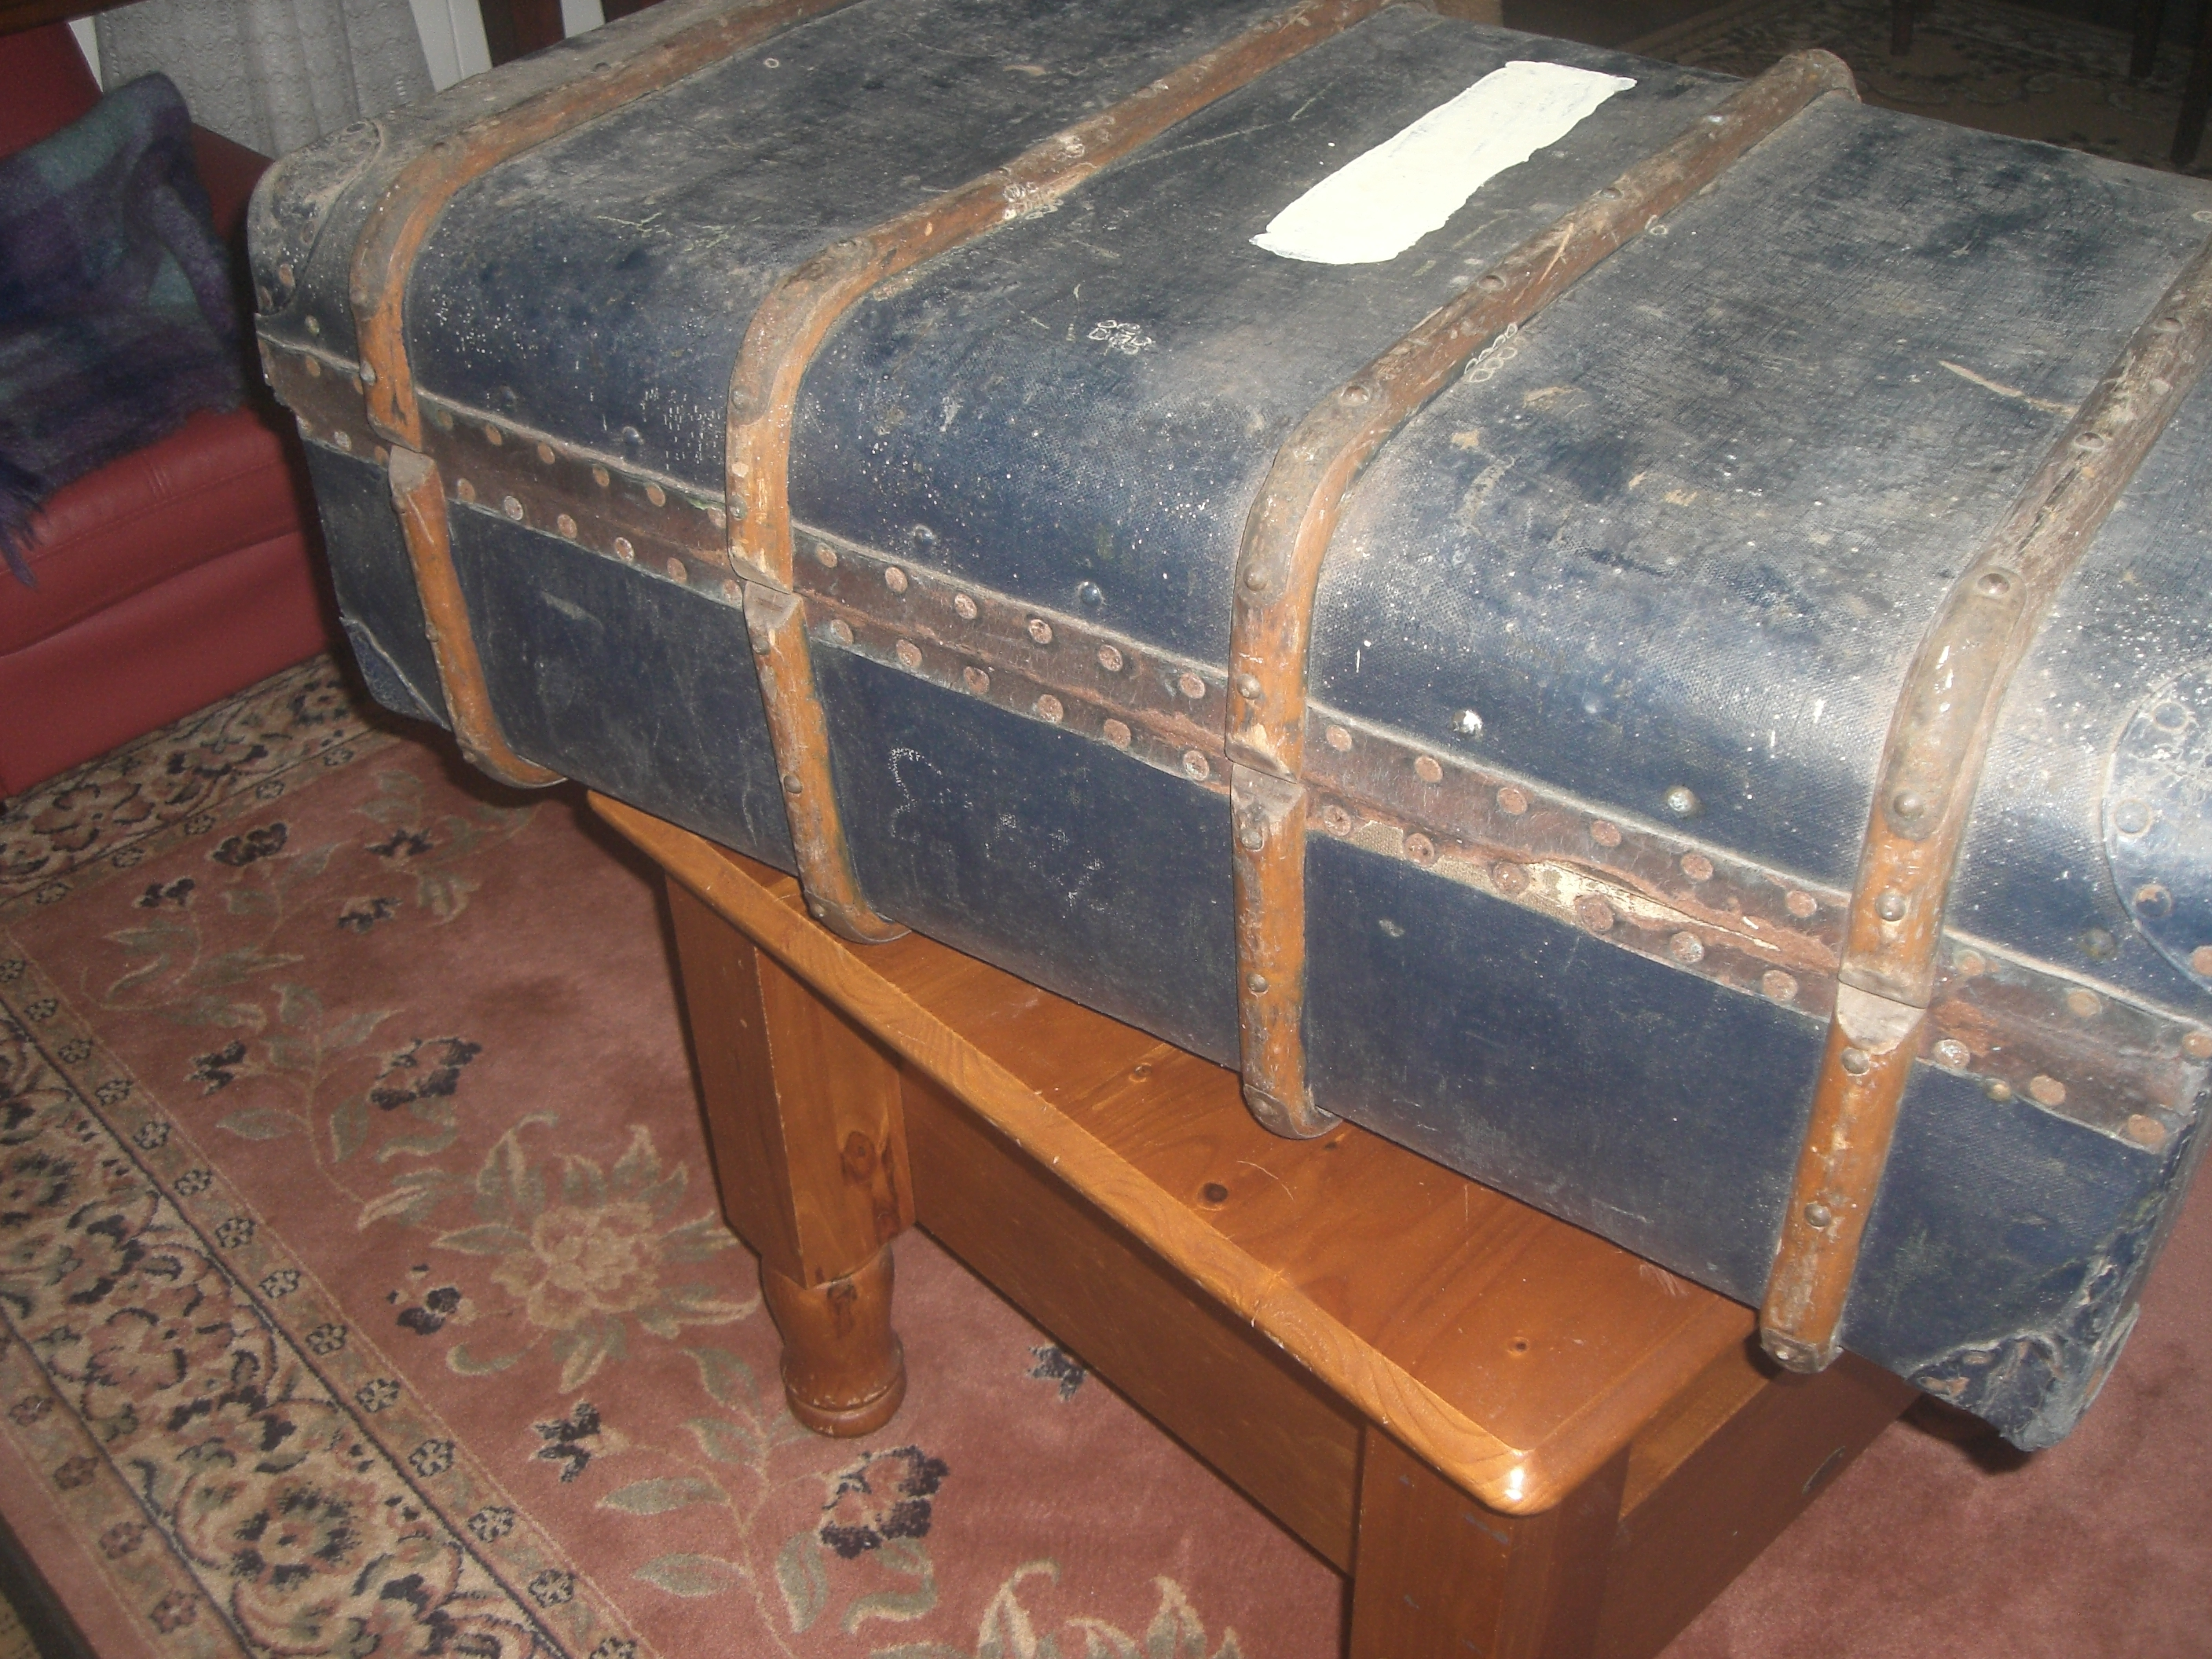 90 to 100 year old Trunk 4 Wooden straps in good condition for its age Blue in colour